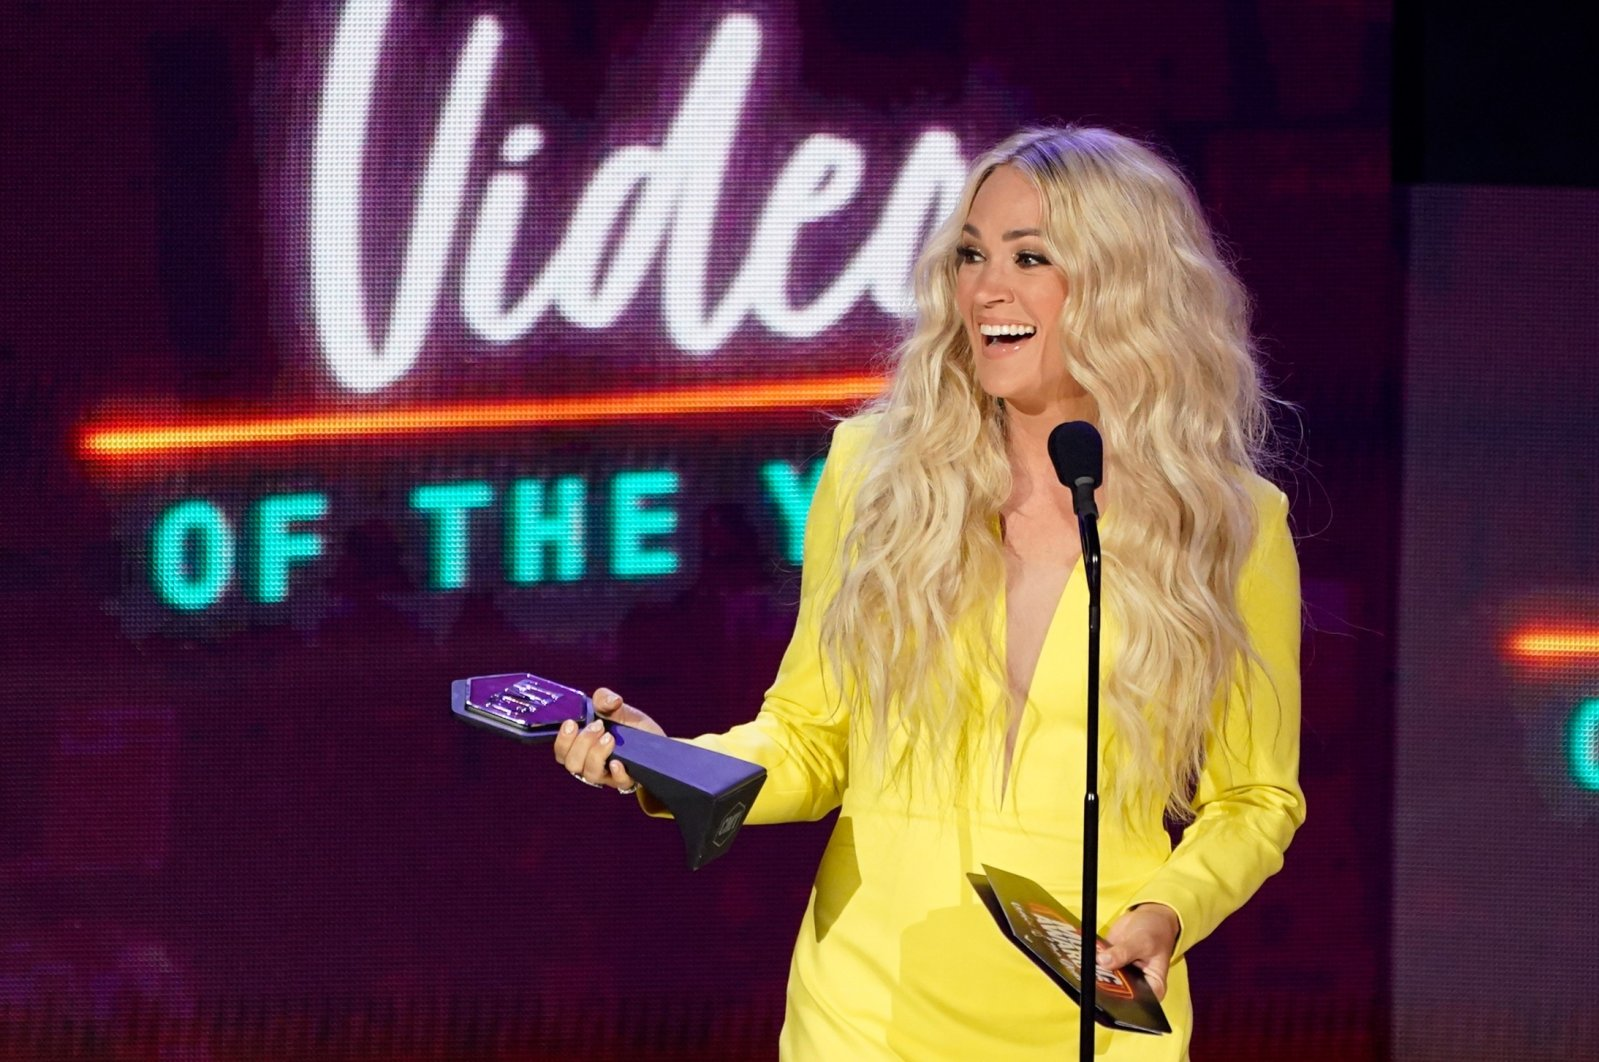 """Carrie Underwood accepts the award for video of the year for """"Hallelujah"""" at the CMT Music Awards at the Bridgestone Arena, in Nashville, Tennnessee, June 9, 2021. (AP Photo)"""